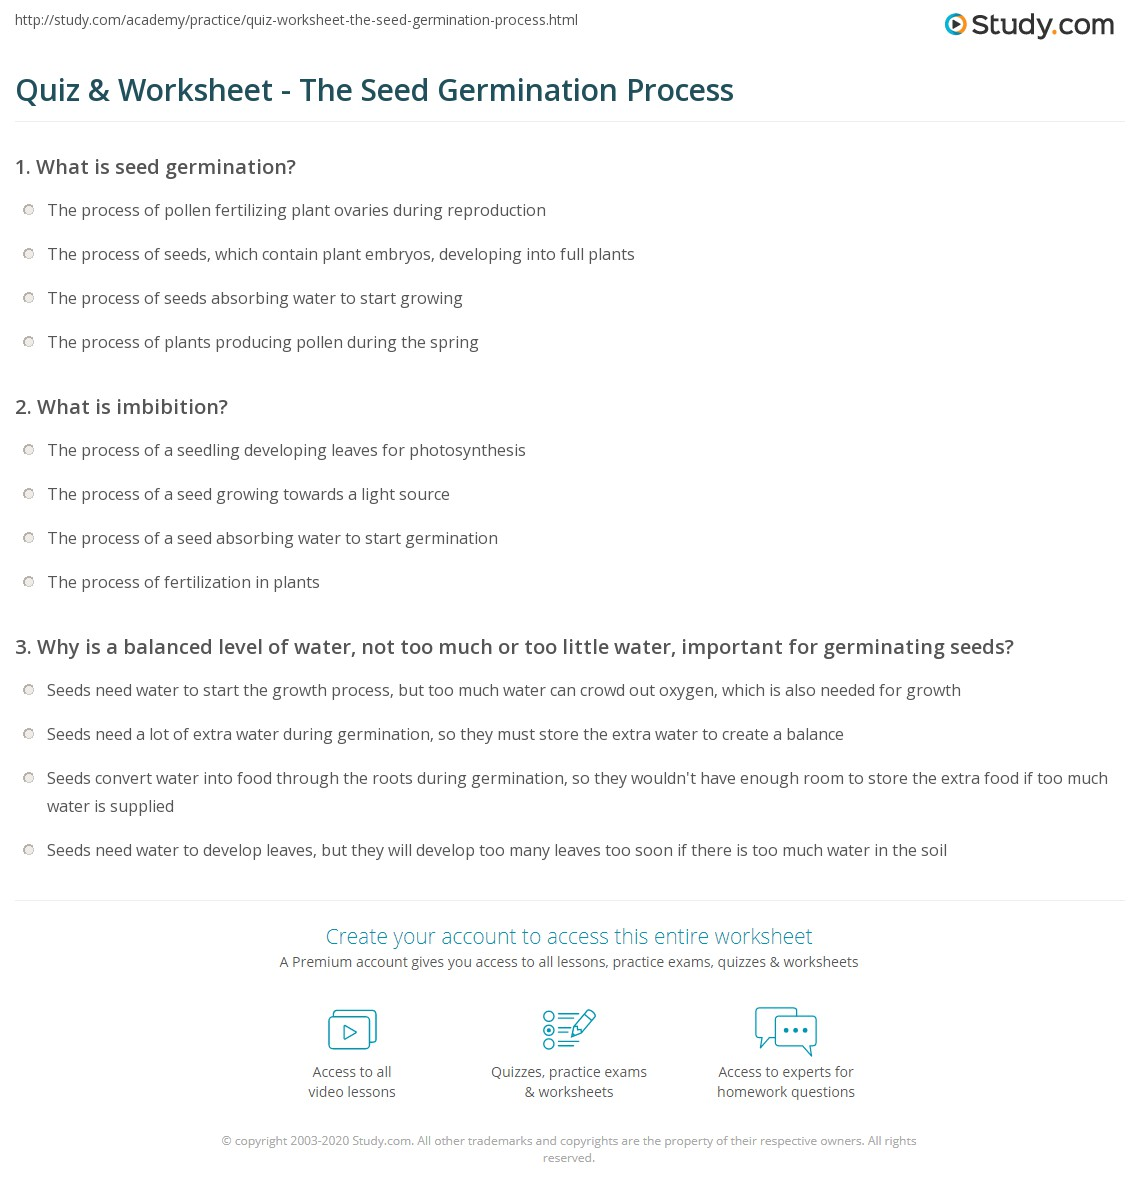 Quiz & Worksheet The Seed Germination Process